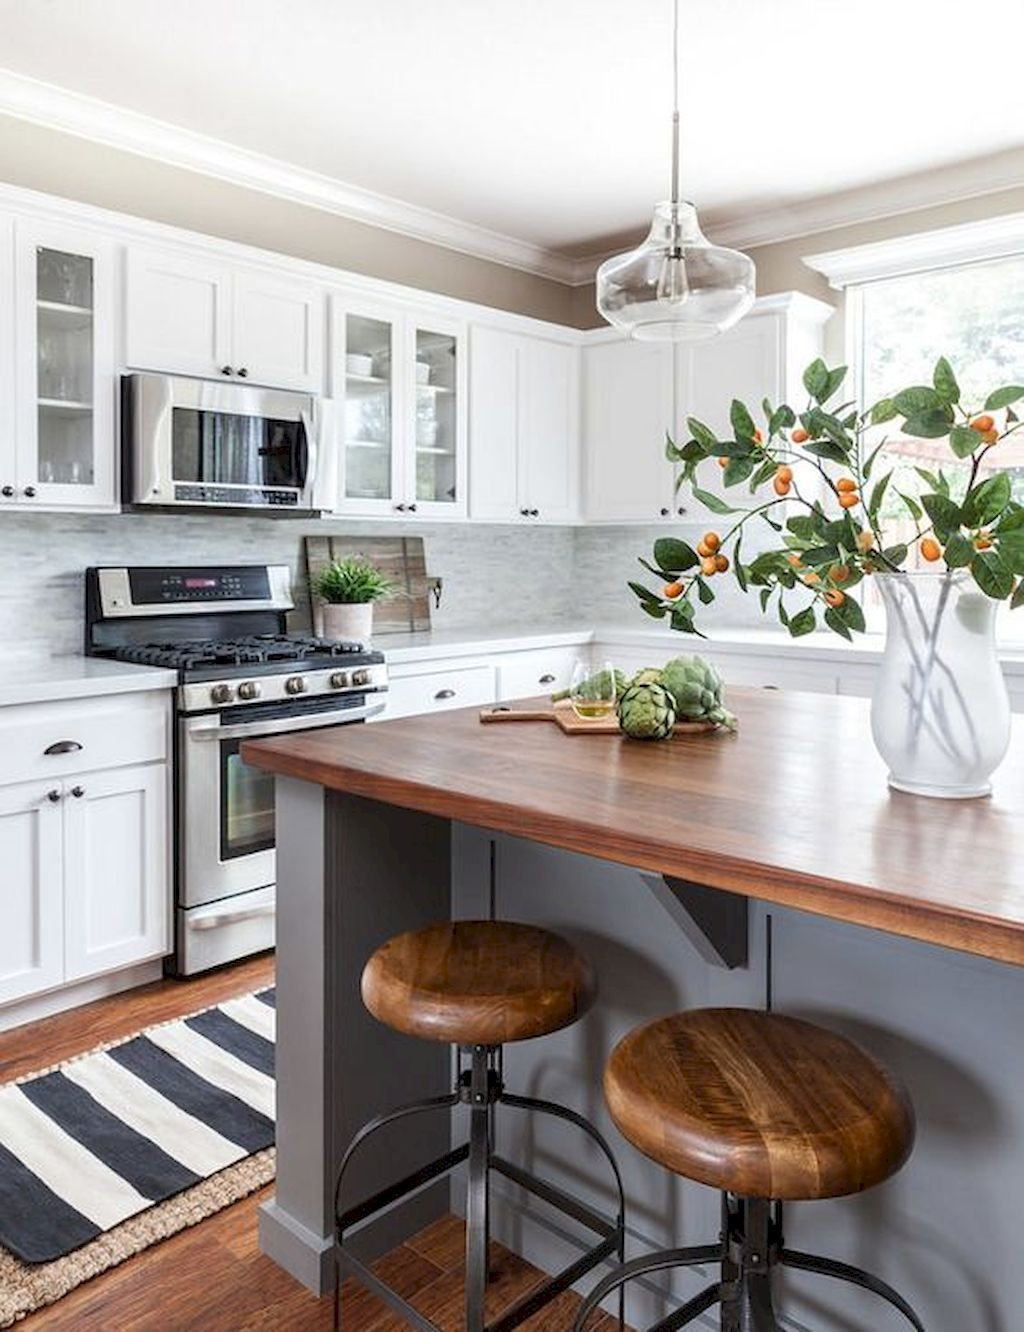 70 Stylish and Inspired Farmhouse Kitchen Island Ideas and ... on diy ideas for stairs, diy ideas for bunk beds, diy ideas for mirrors, diy ideas for home bars, diy ideas for chandeliers, diy ideas for landscaping, diy ideas for doors, diy ideas for decor, diy ideas for furniture, diy ideas for porches, diy ideas for shelves, diy ideas for planters, diy ideas for closets, diy ideas for fireplaces, diy ideas for table tops, diy ideas for home office, diy ideas for living rooms, diy ideas for gifts, diy ideas for tv stands, diy ideas for desks,